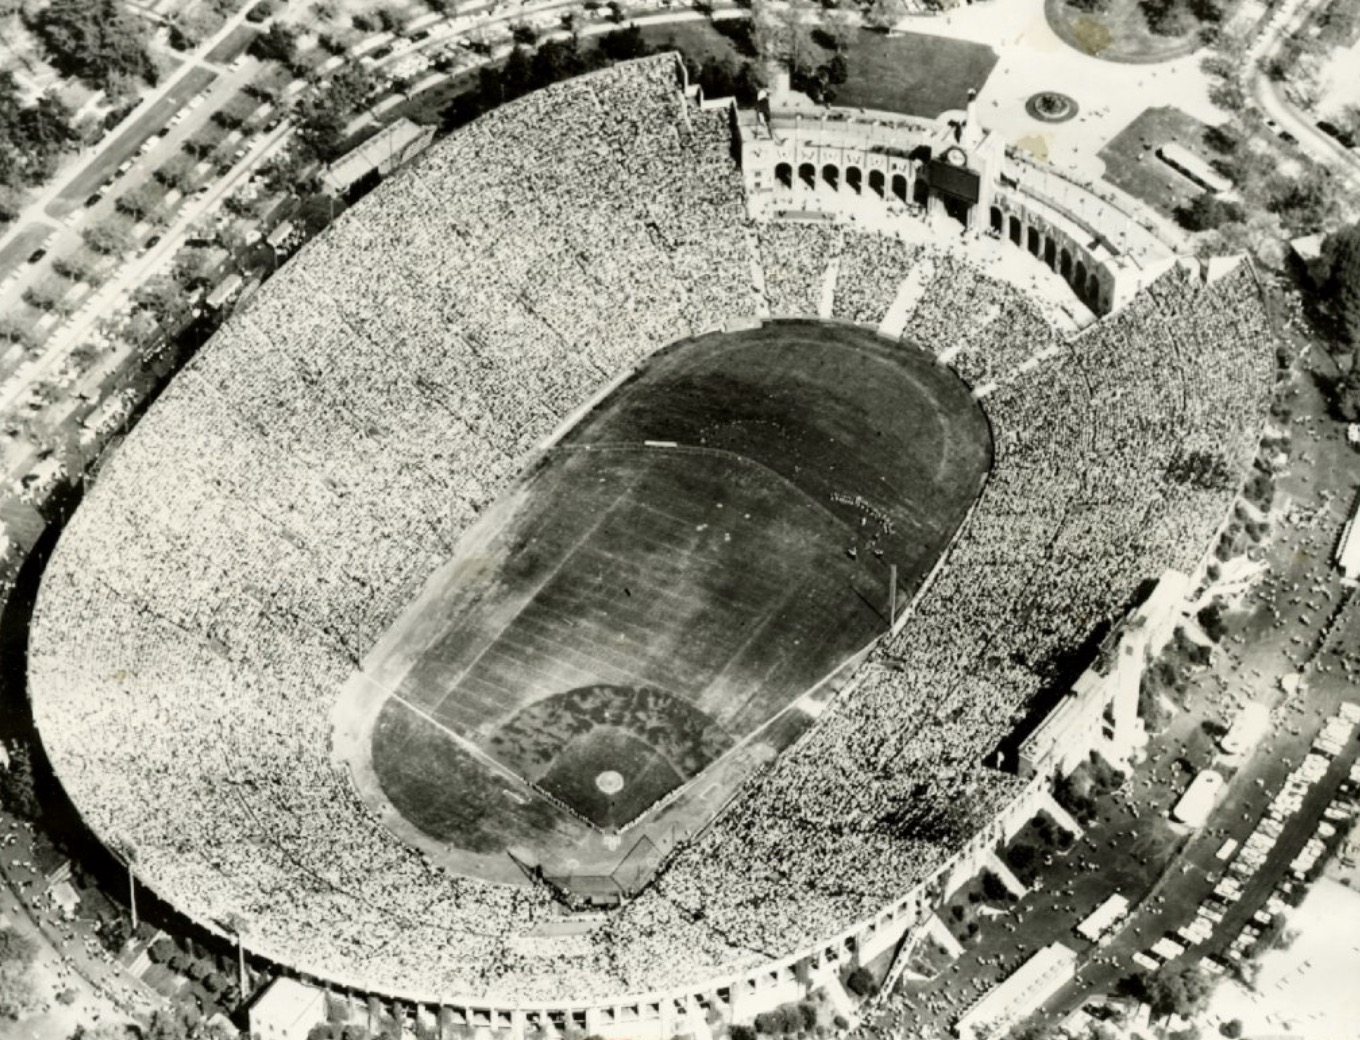 100 moments for 100 years of the Bears: Bears draw 75,000 to Los Angeles Coliseum in 1926